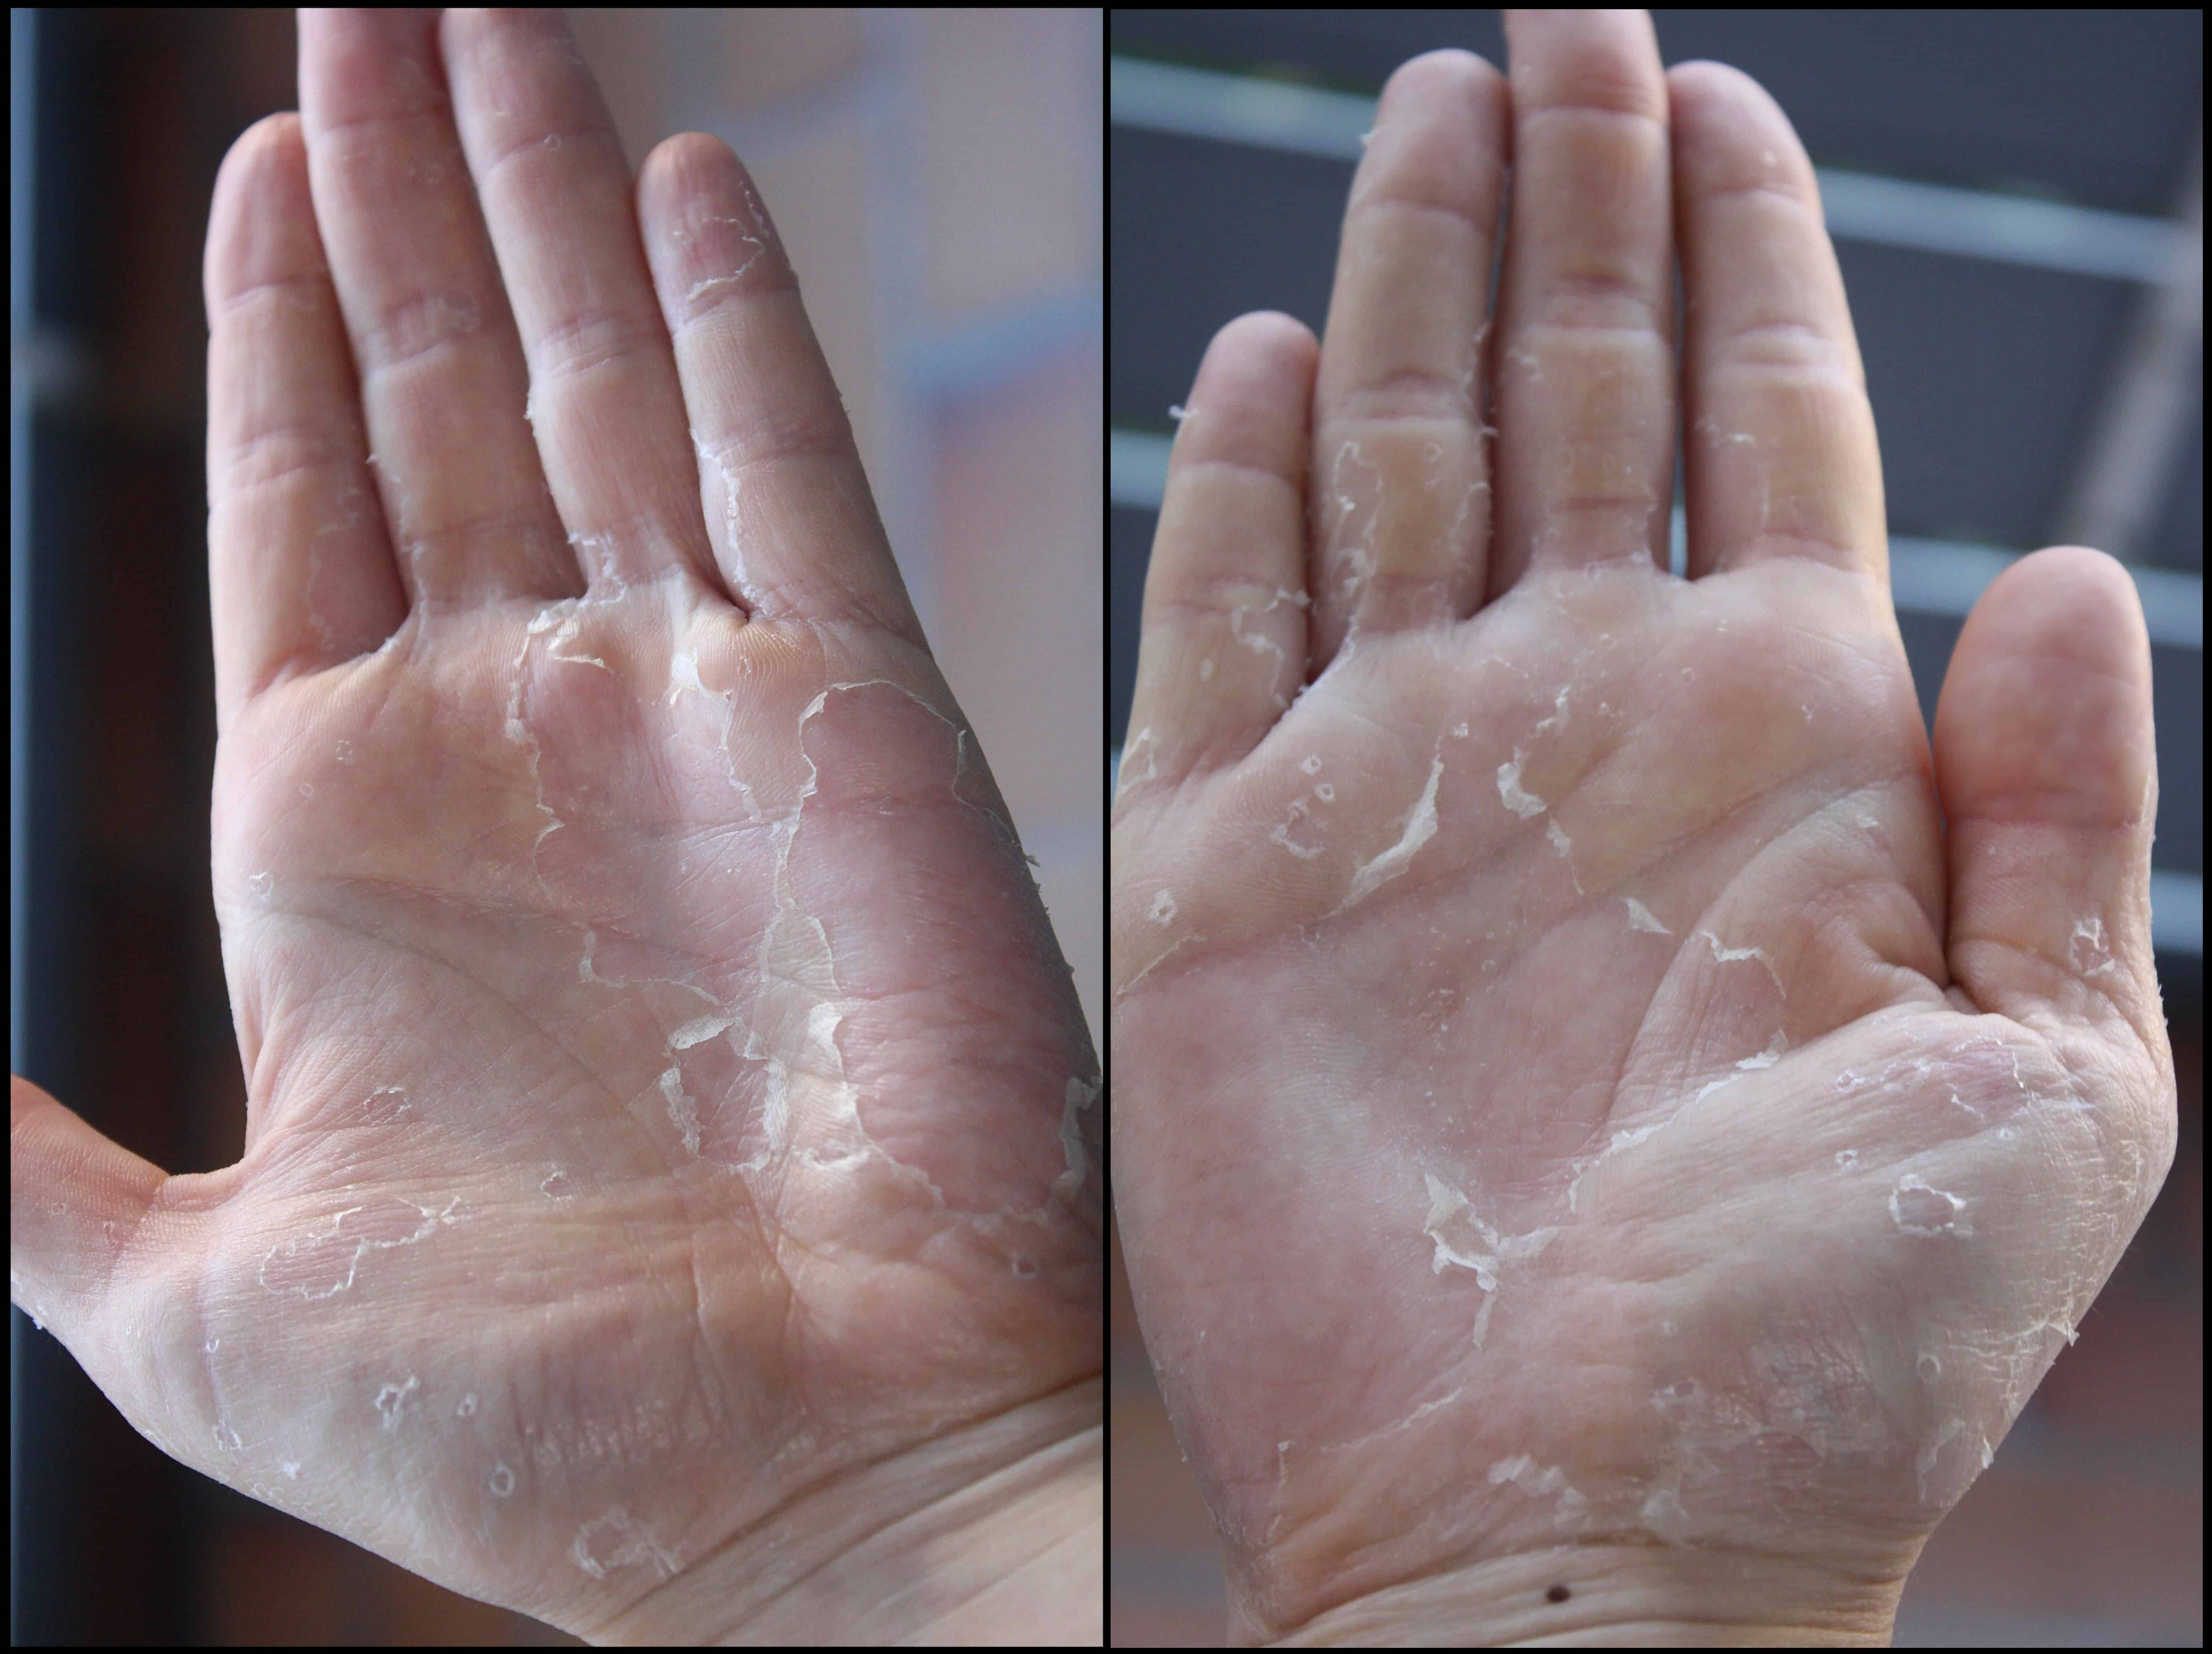 Symptoms of skin peeling